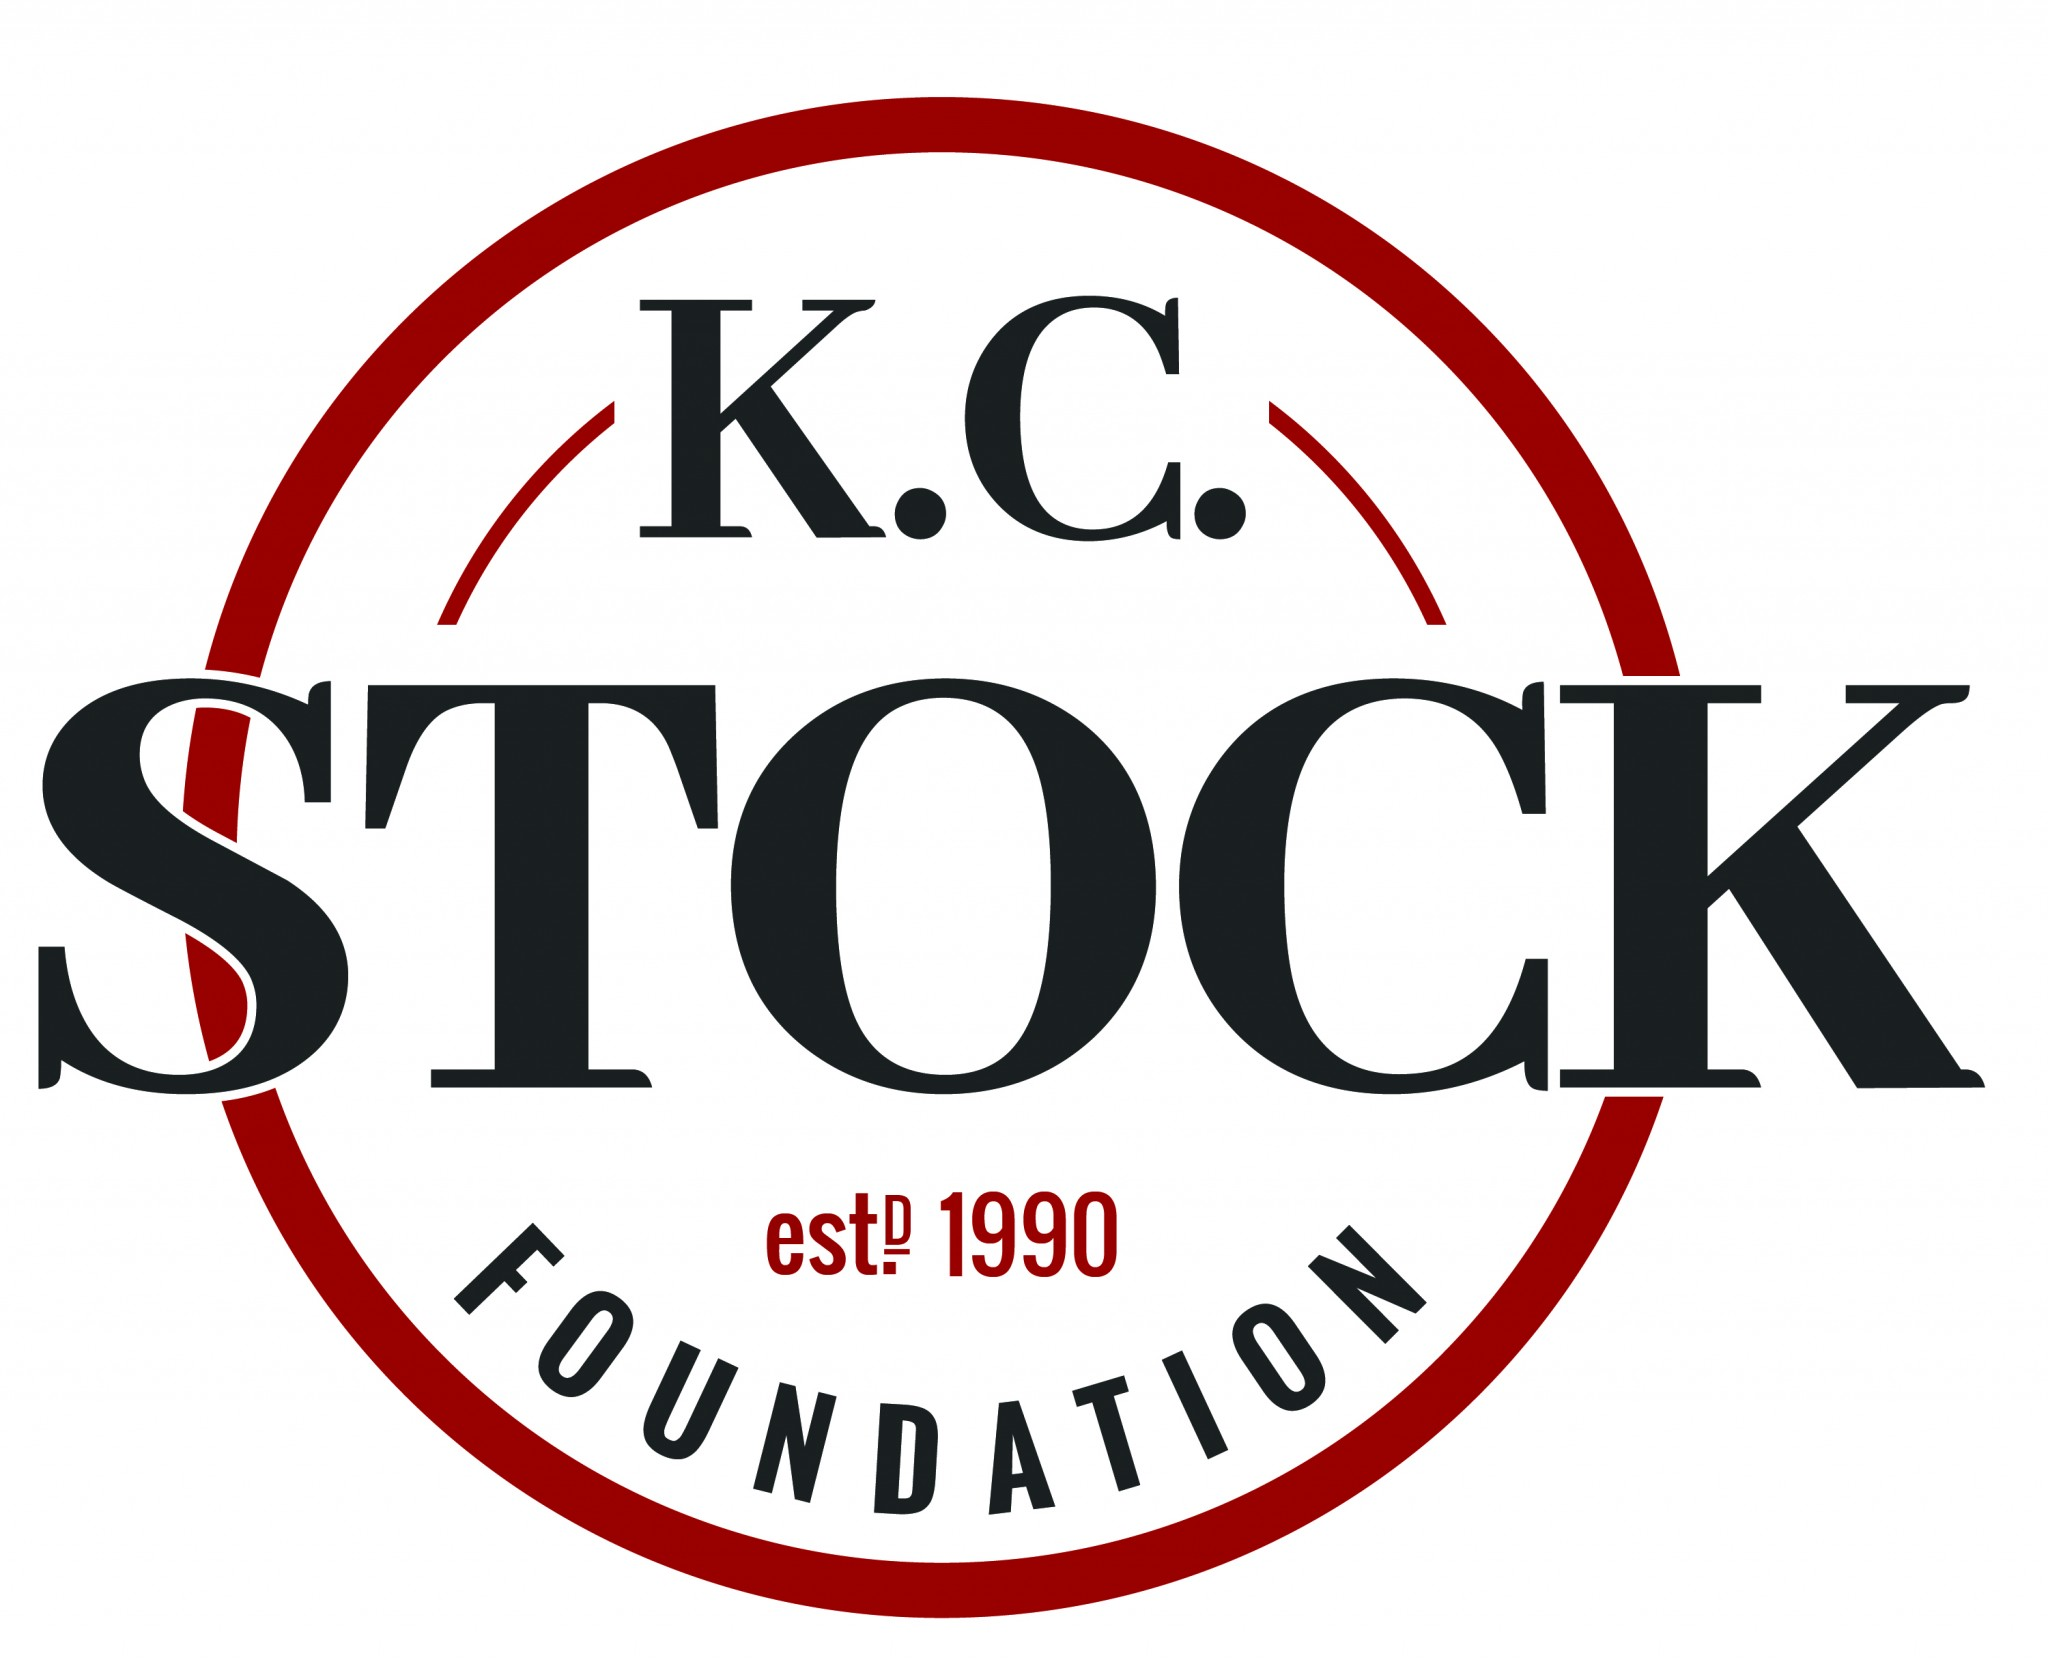 k-c-stock-foundation-logo-01